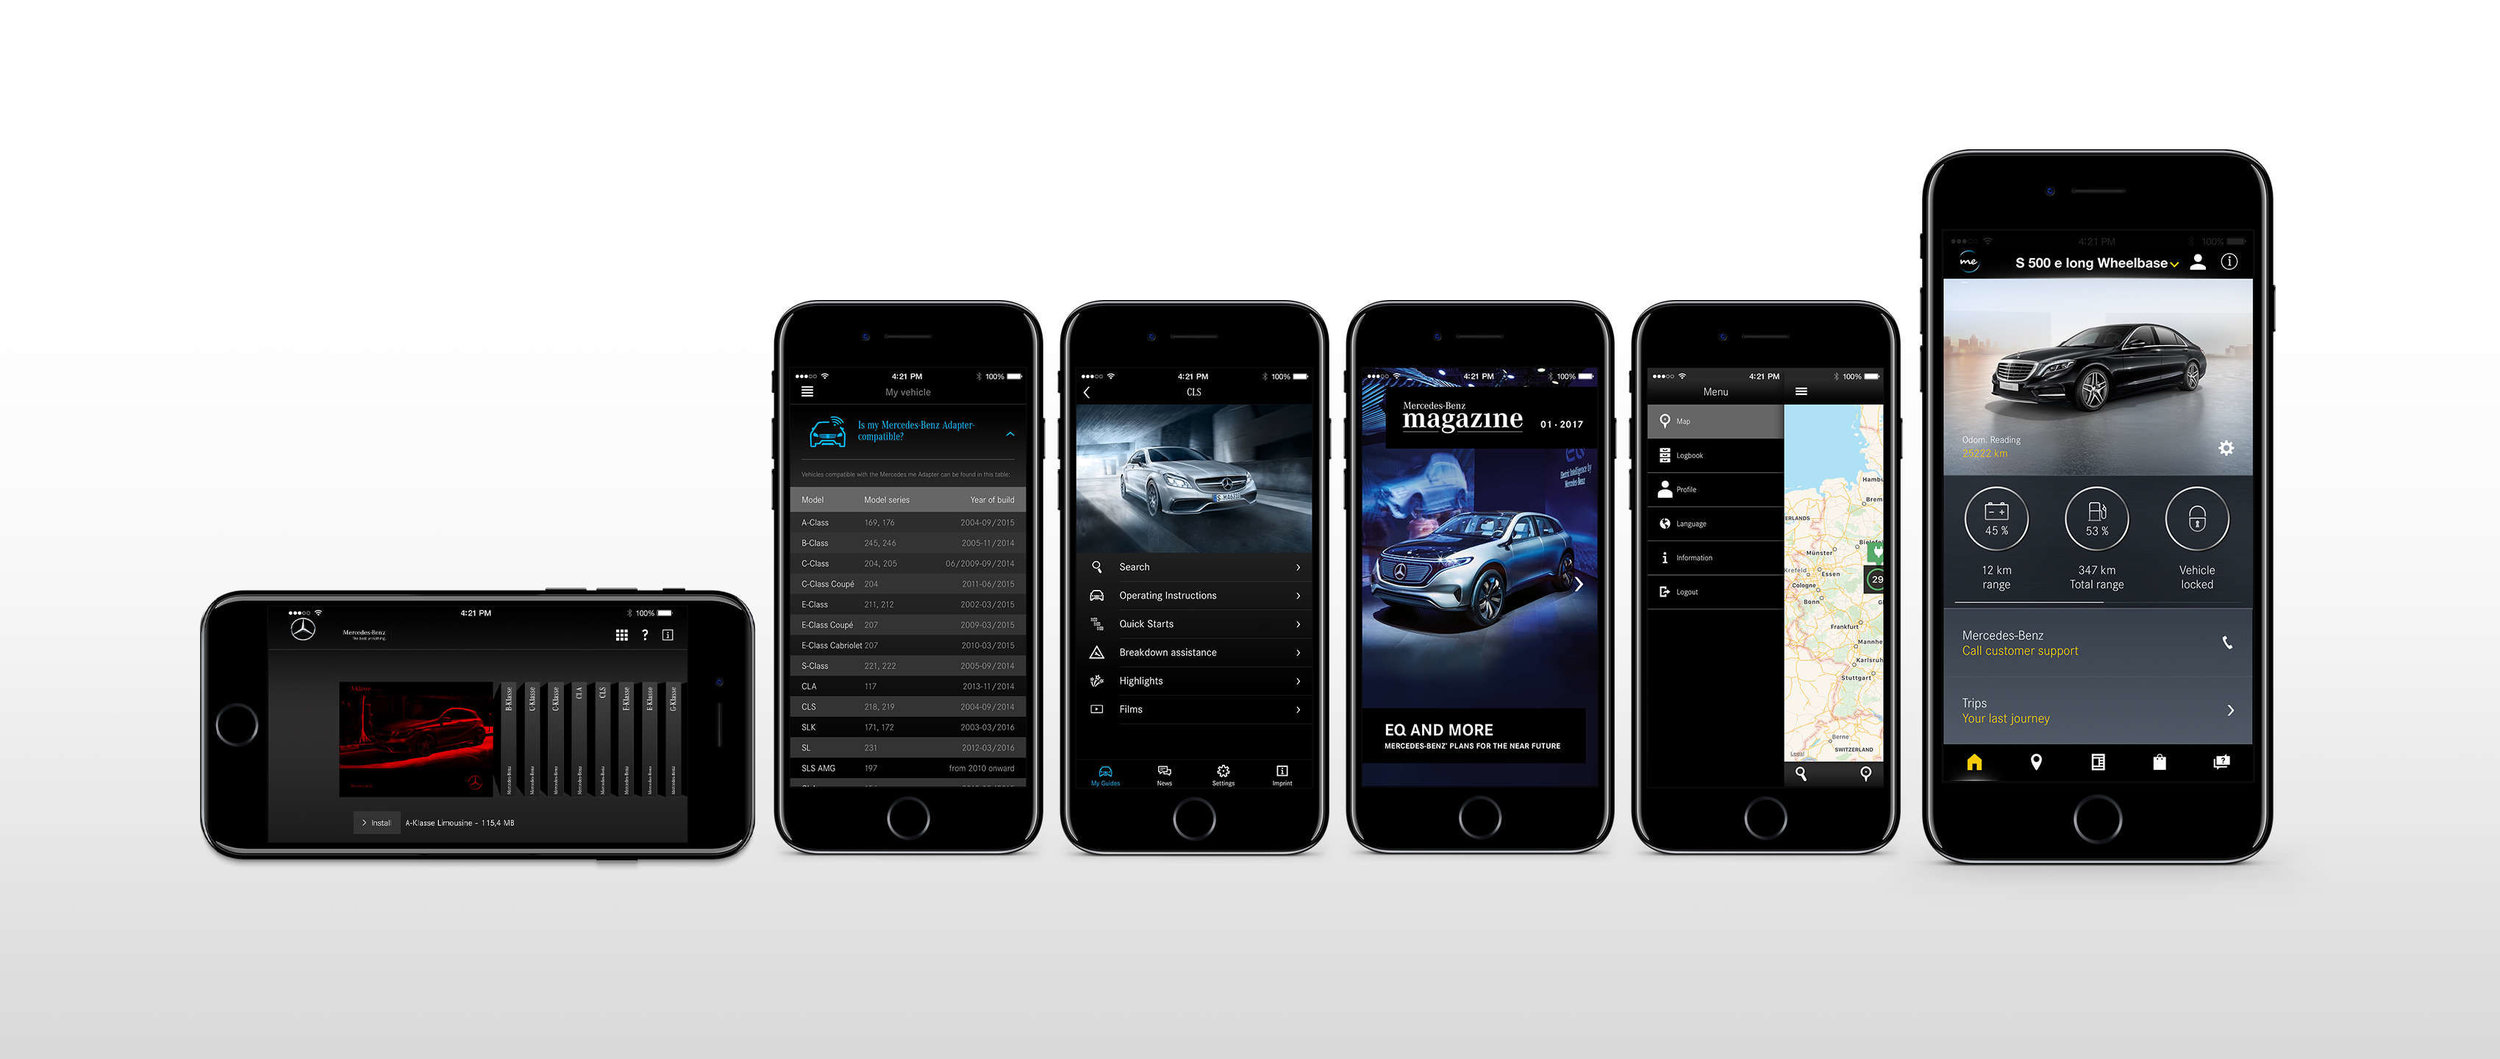 Mercedes' current suite of apps share little design with their in-car siblings, a missed opportunity to create a seamless end-to-end experience